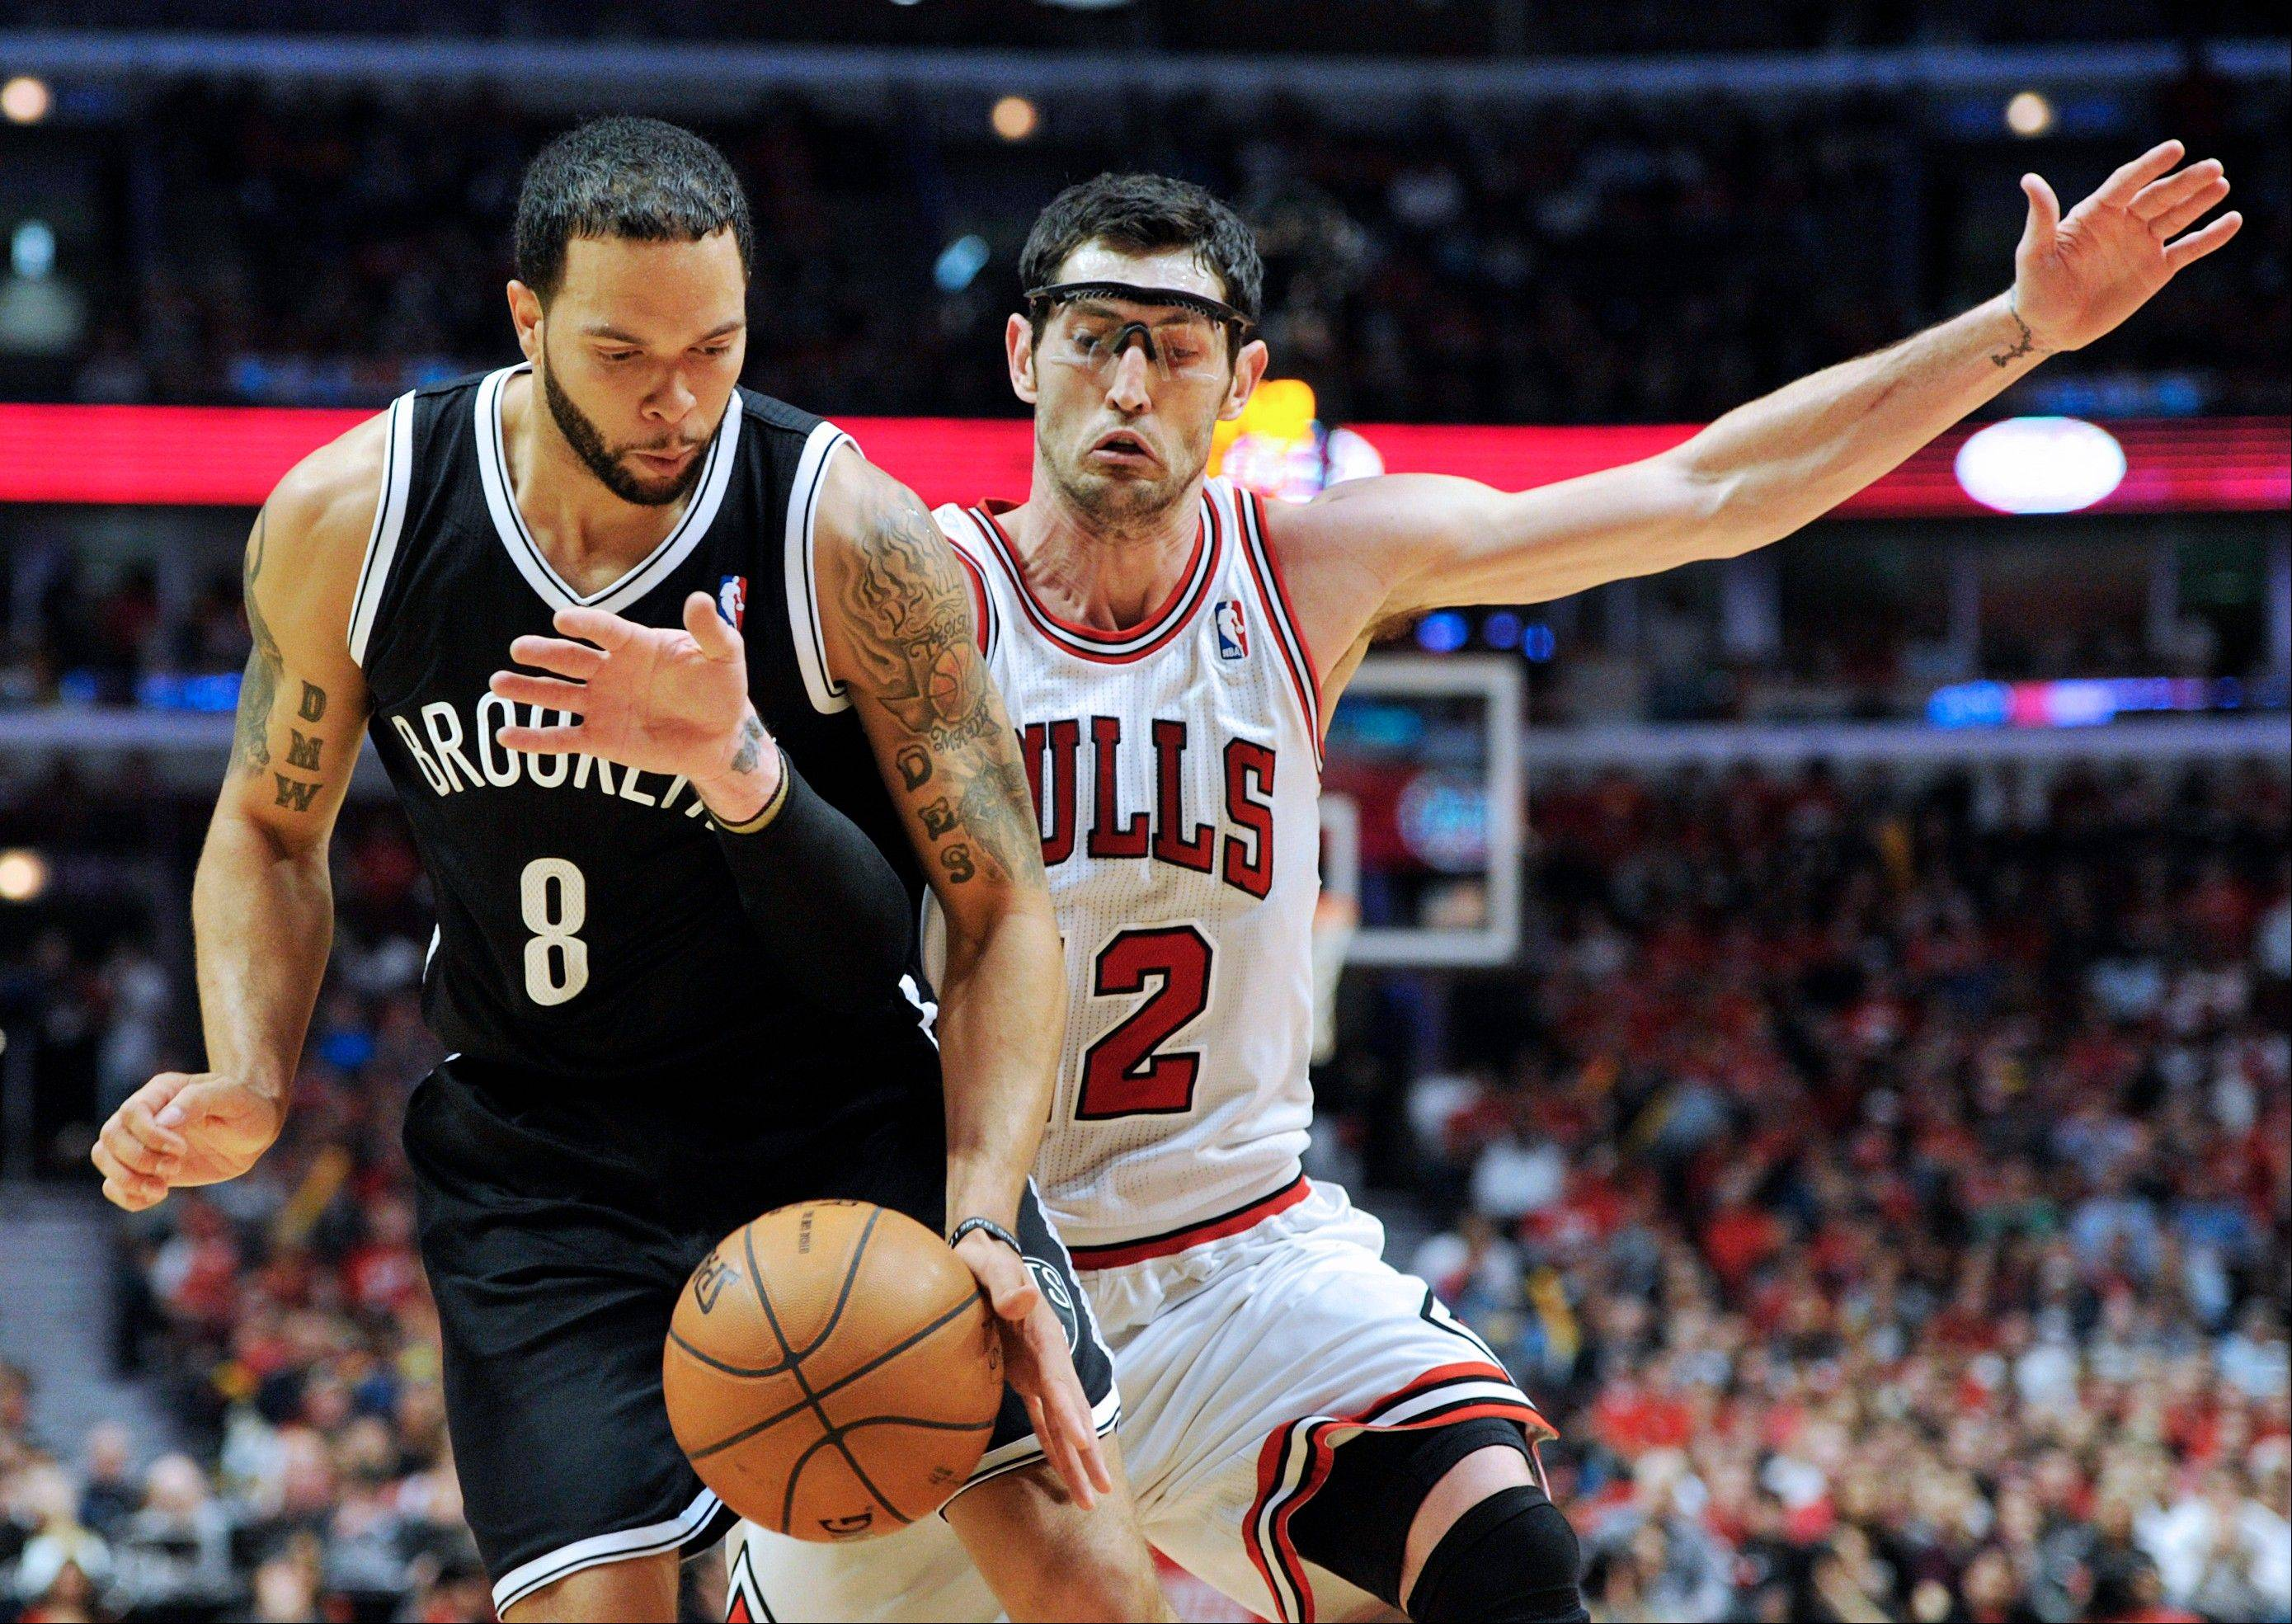 Brooklyn Nets' Deron Williams (8) and Chicago Bulls' Kirk Hinrich (12) scramble for the ball during the second half in Game 4 of their first-round NBA basketball playoff series Saturday, April 27, 2013, in Chicago. The Bulls won 142-134 in three overtimes.